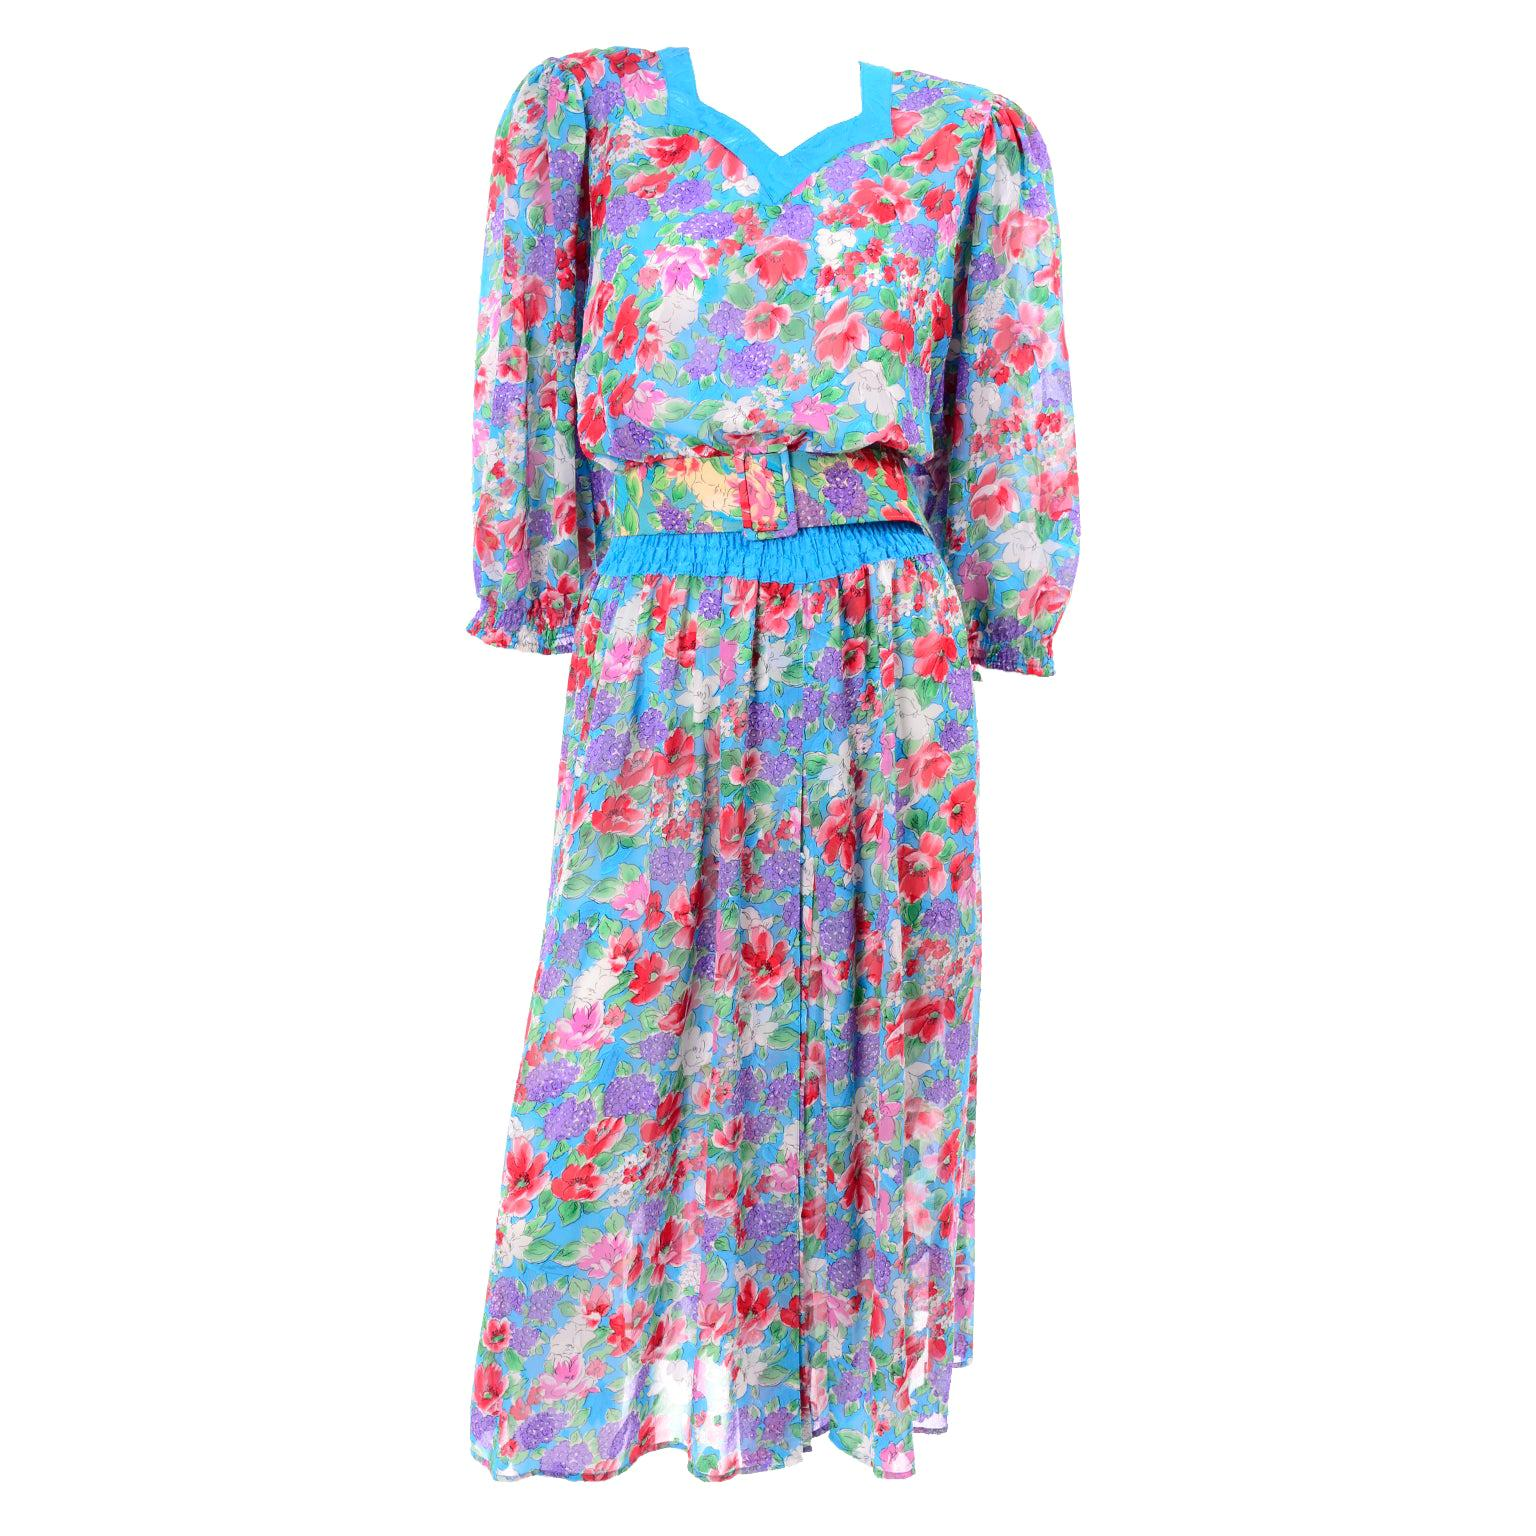 1980s Diane Freis Turquoise Purple Red Pink & Green Floral Print Dress With Belt